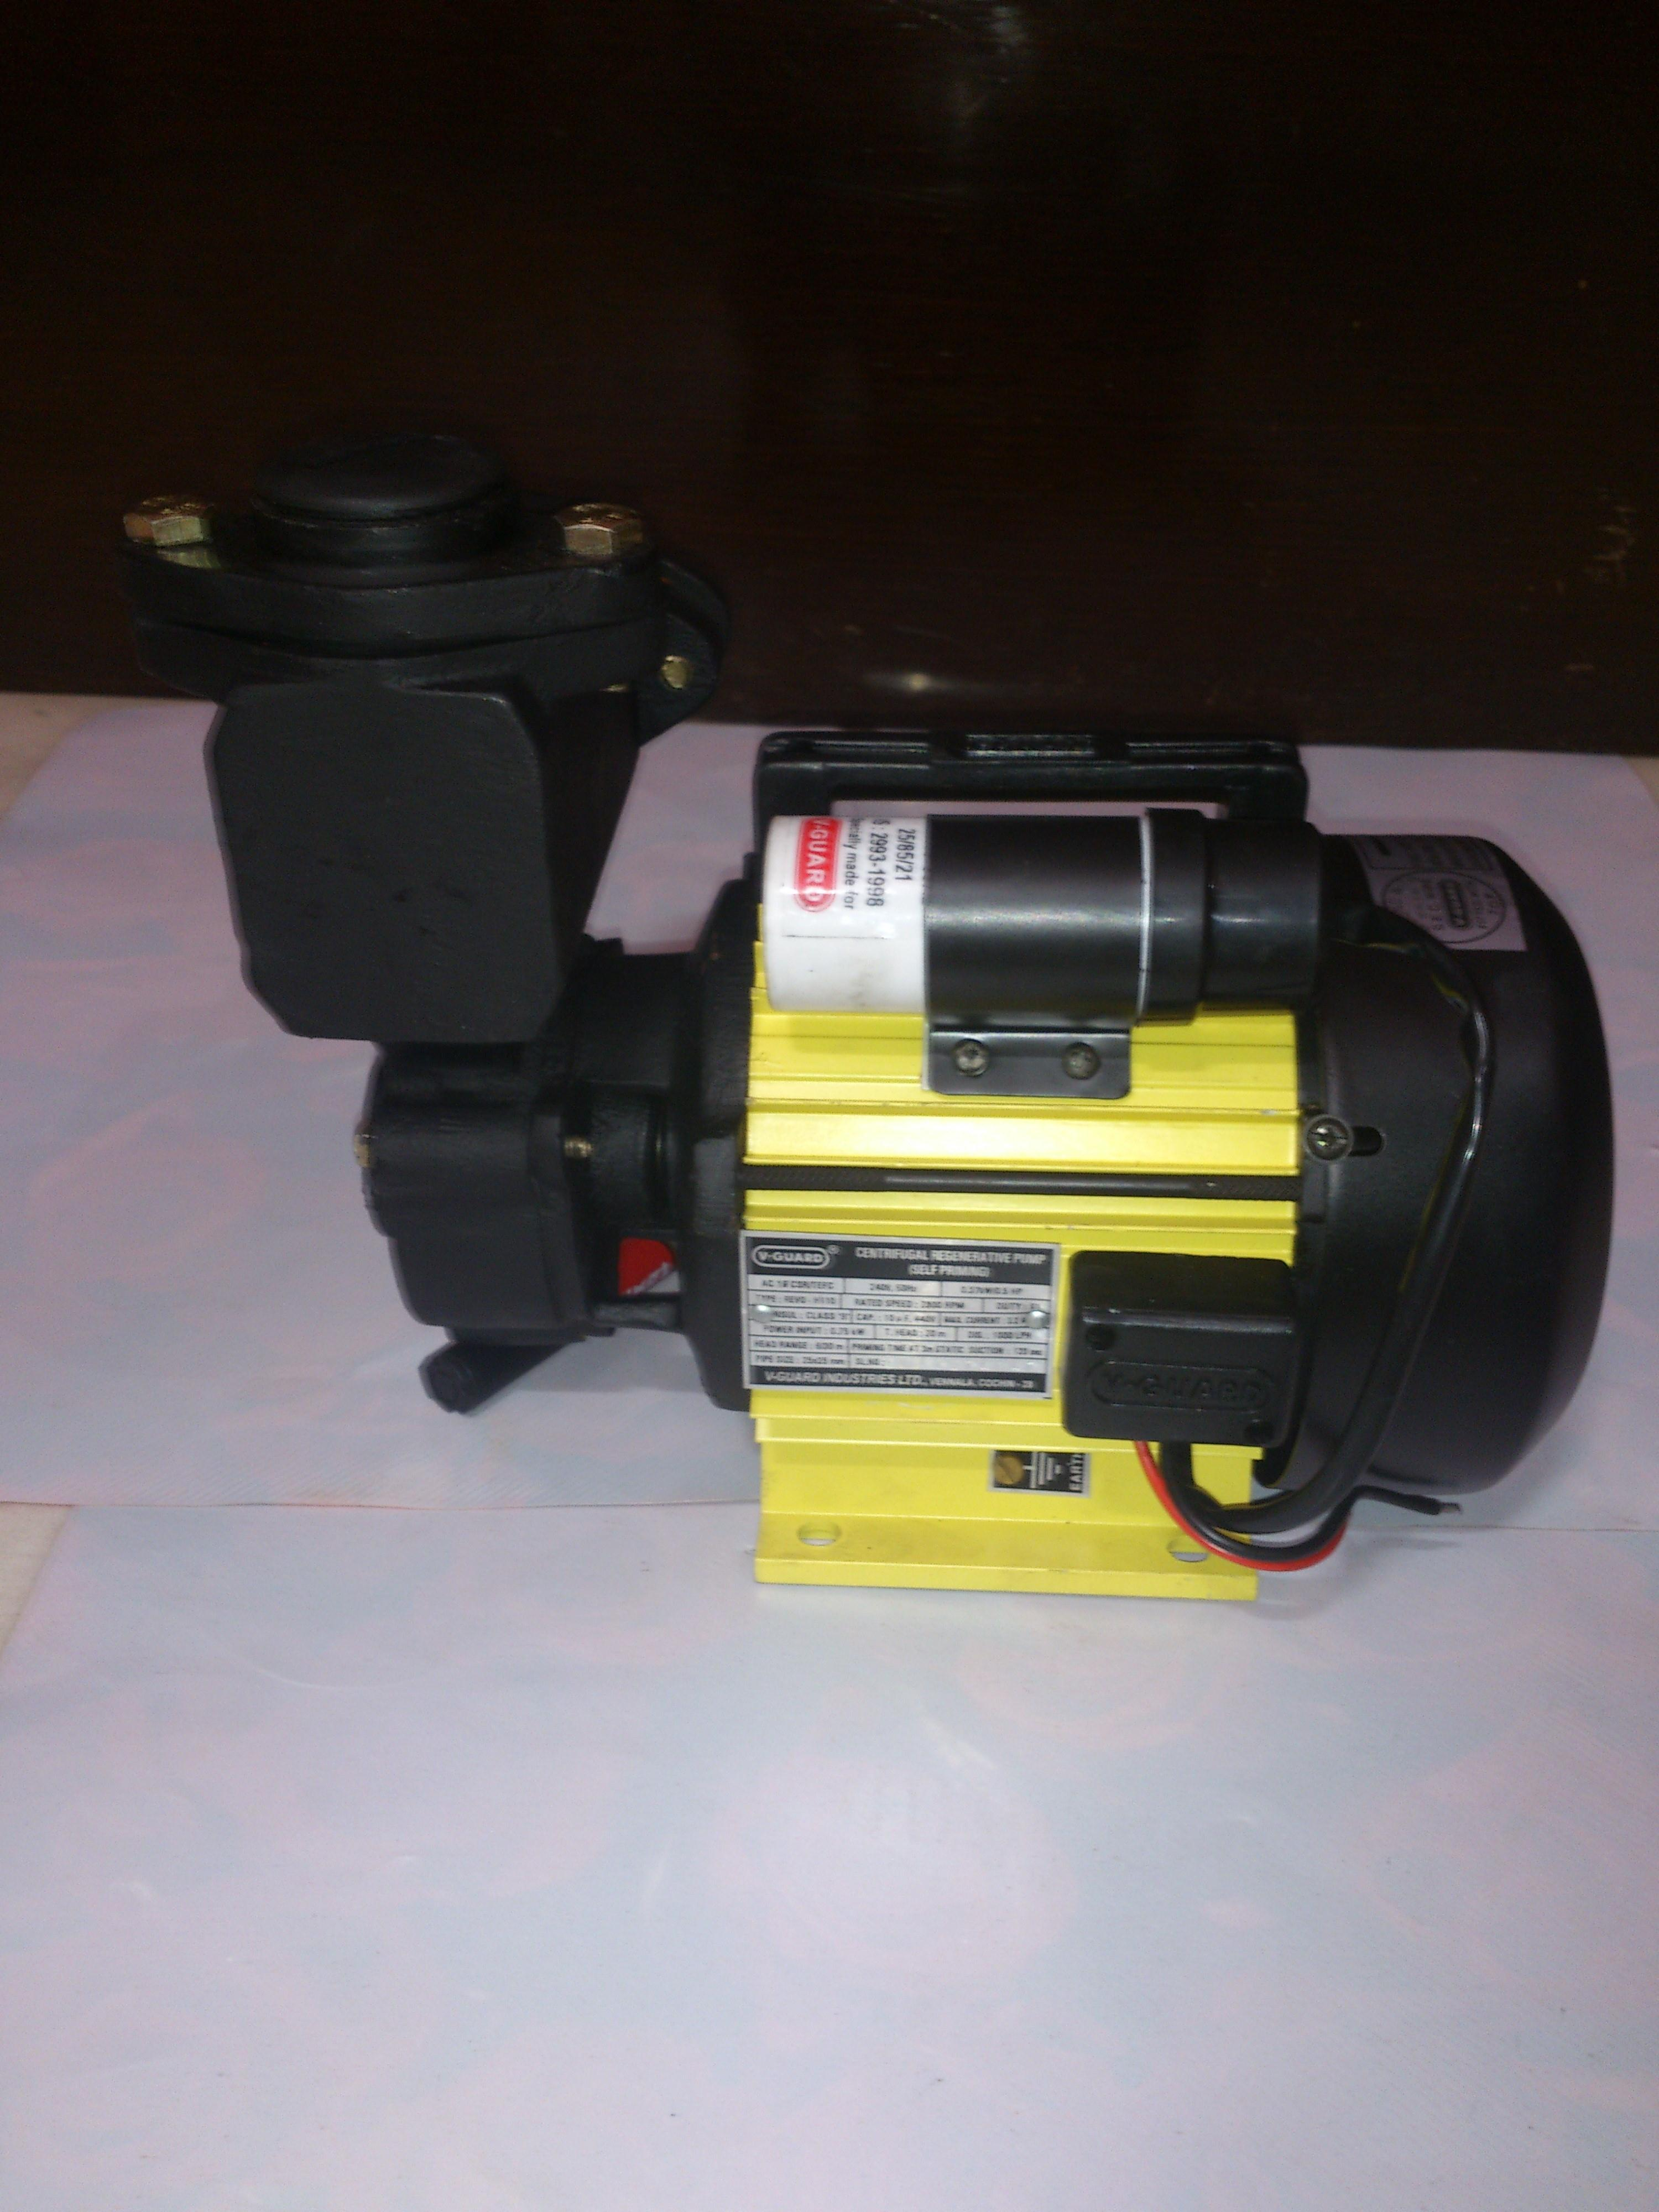 GNT V-GUARD 0.5 HP Self Priming Water Motor/Pump REVO